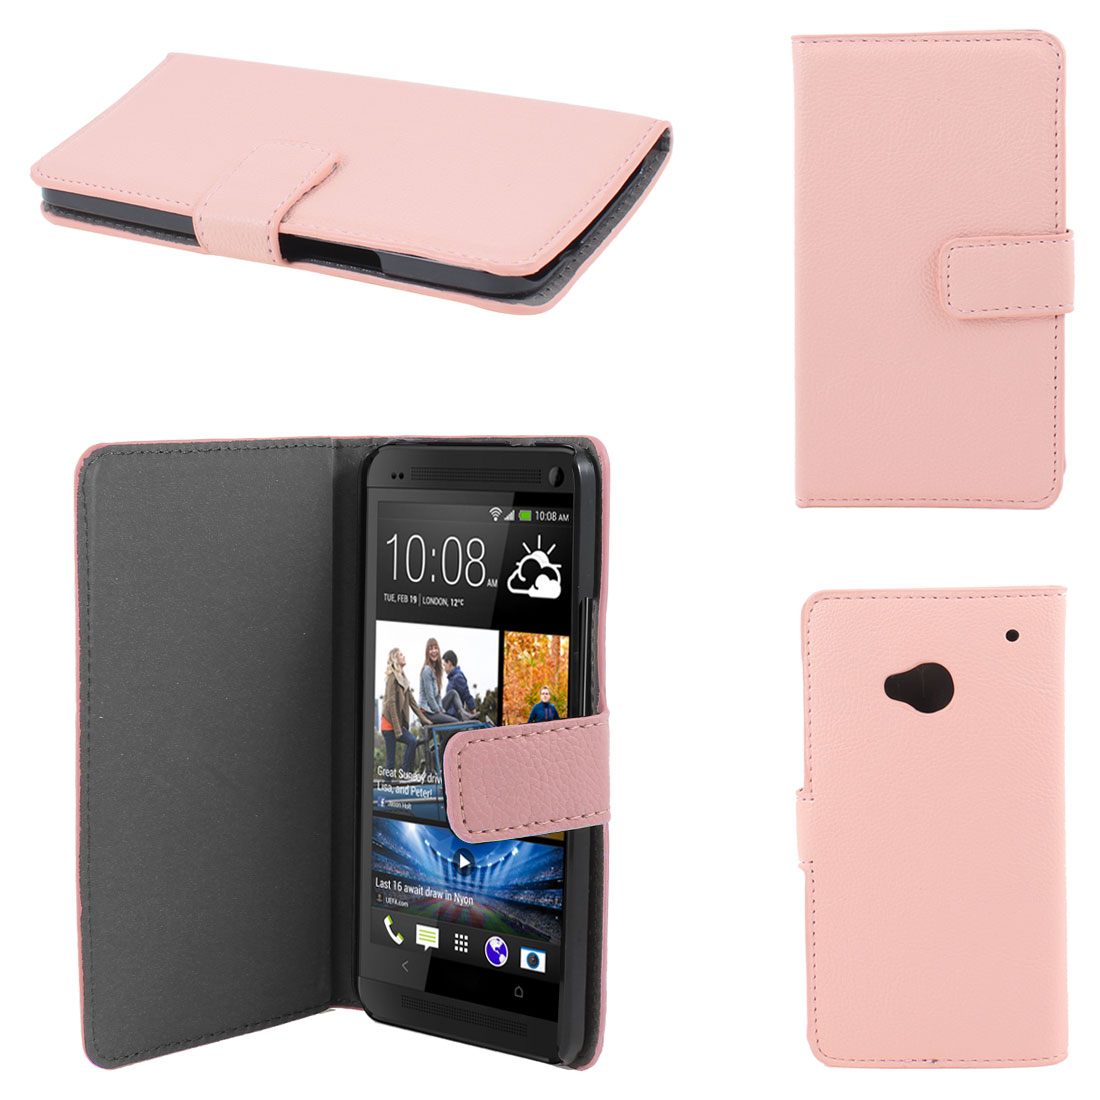 Pink Faux Leather Litchi Print Magnetic Flip Case Cover Pouch for HTC one M7